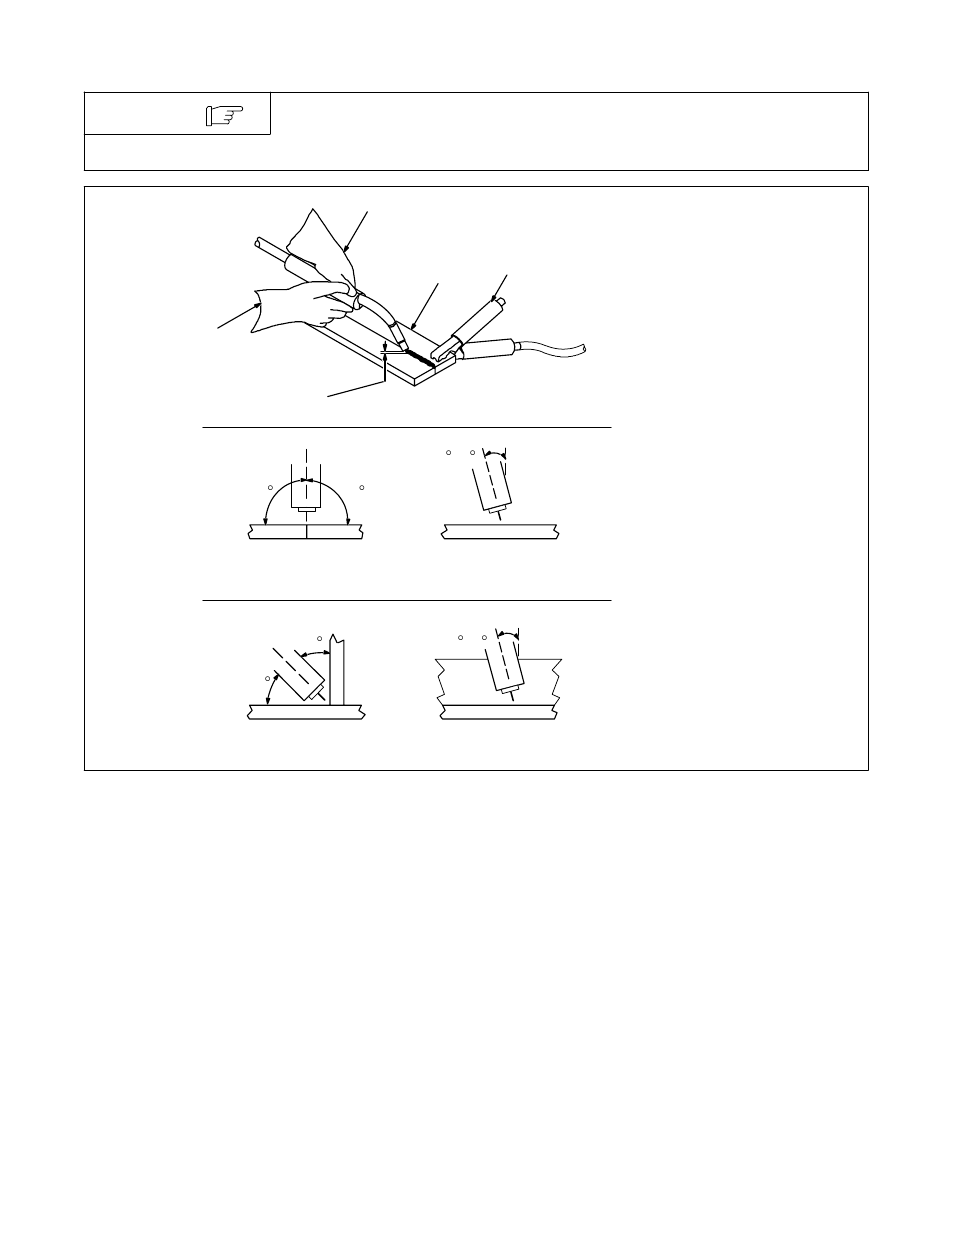 Welding Gun Angle Diagram Trusted Wiring Diagrams Holding And Positioning 3 Water